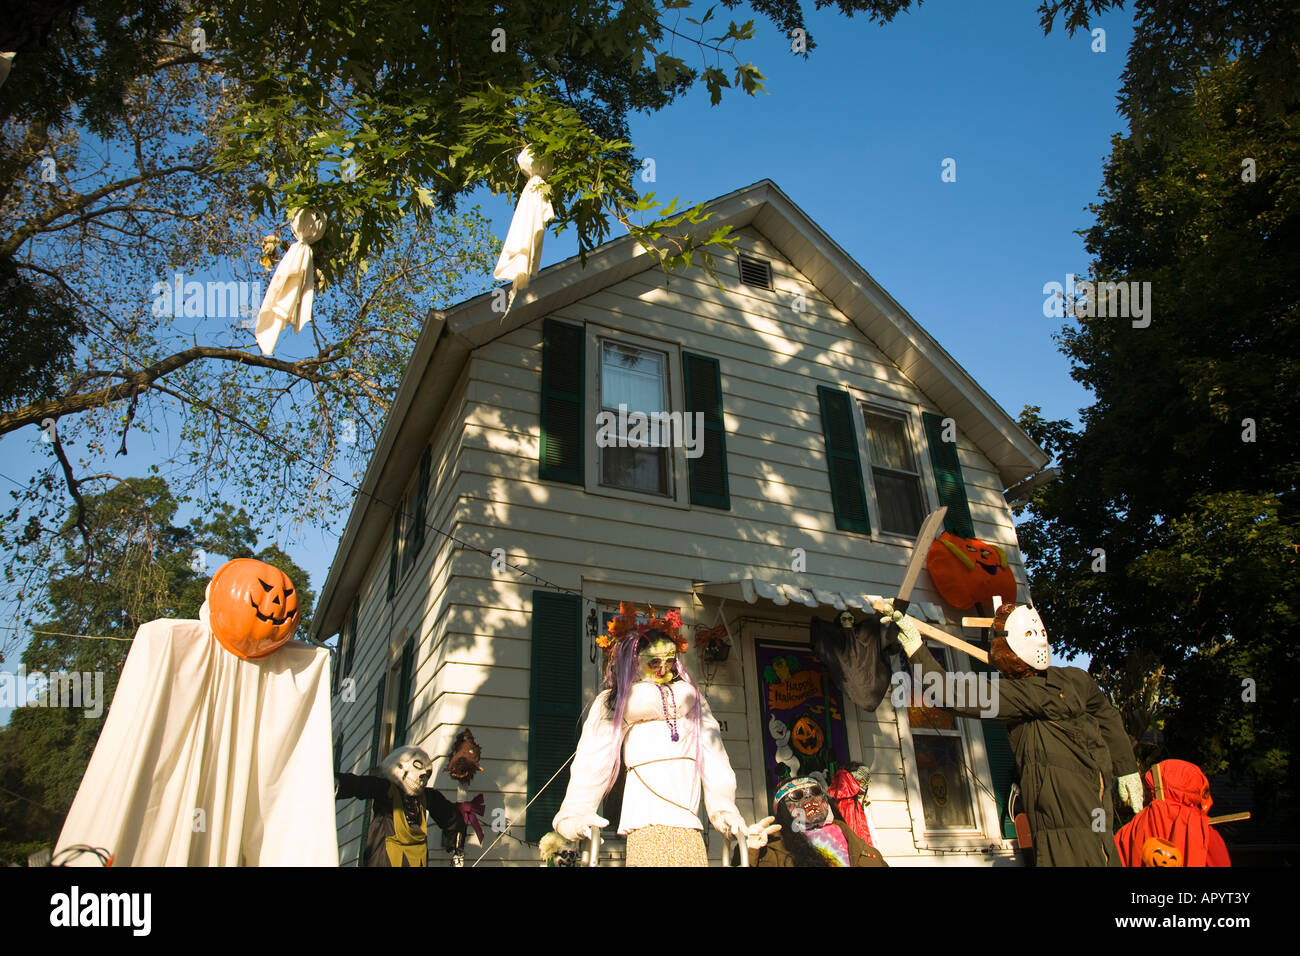 Illinois Dixon Ghoulish Halloween Decorations In Front Yard Of House  Pumpkin Head Executioner Scary People Standing